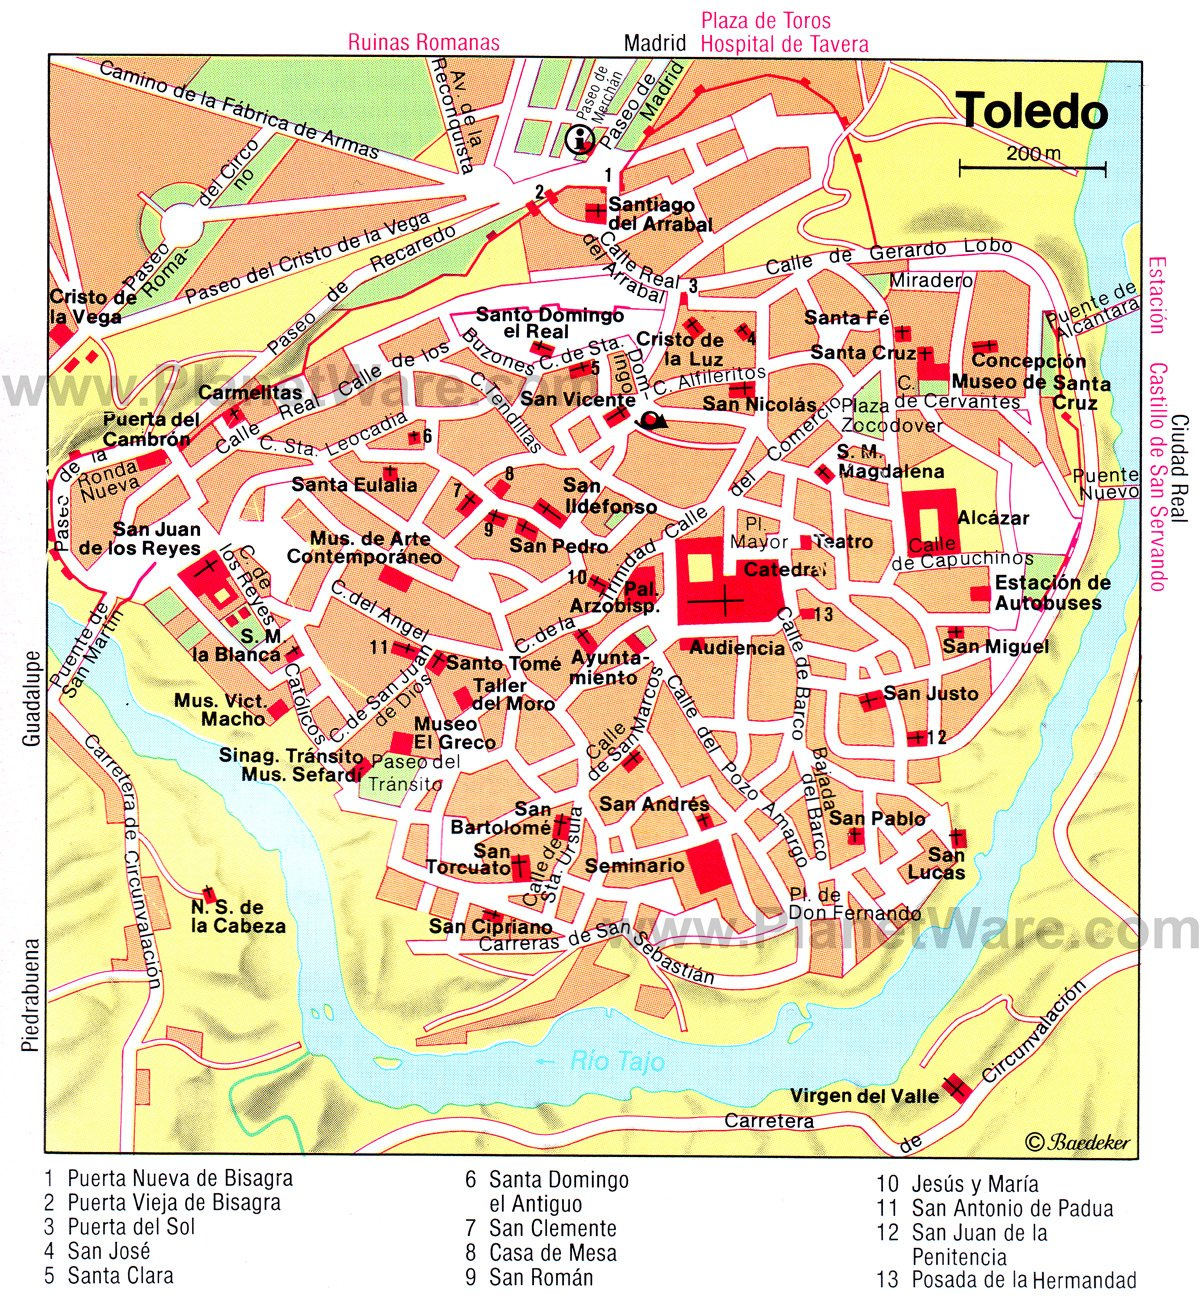 15 Top Tourist Attractions in Toledo & Easy Day Trips | PlanetWare